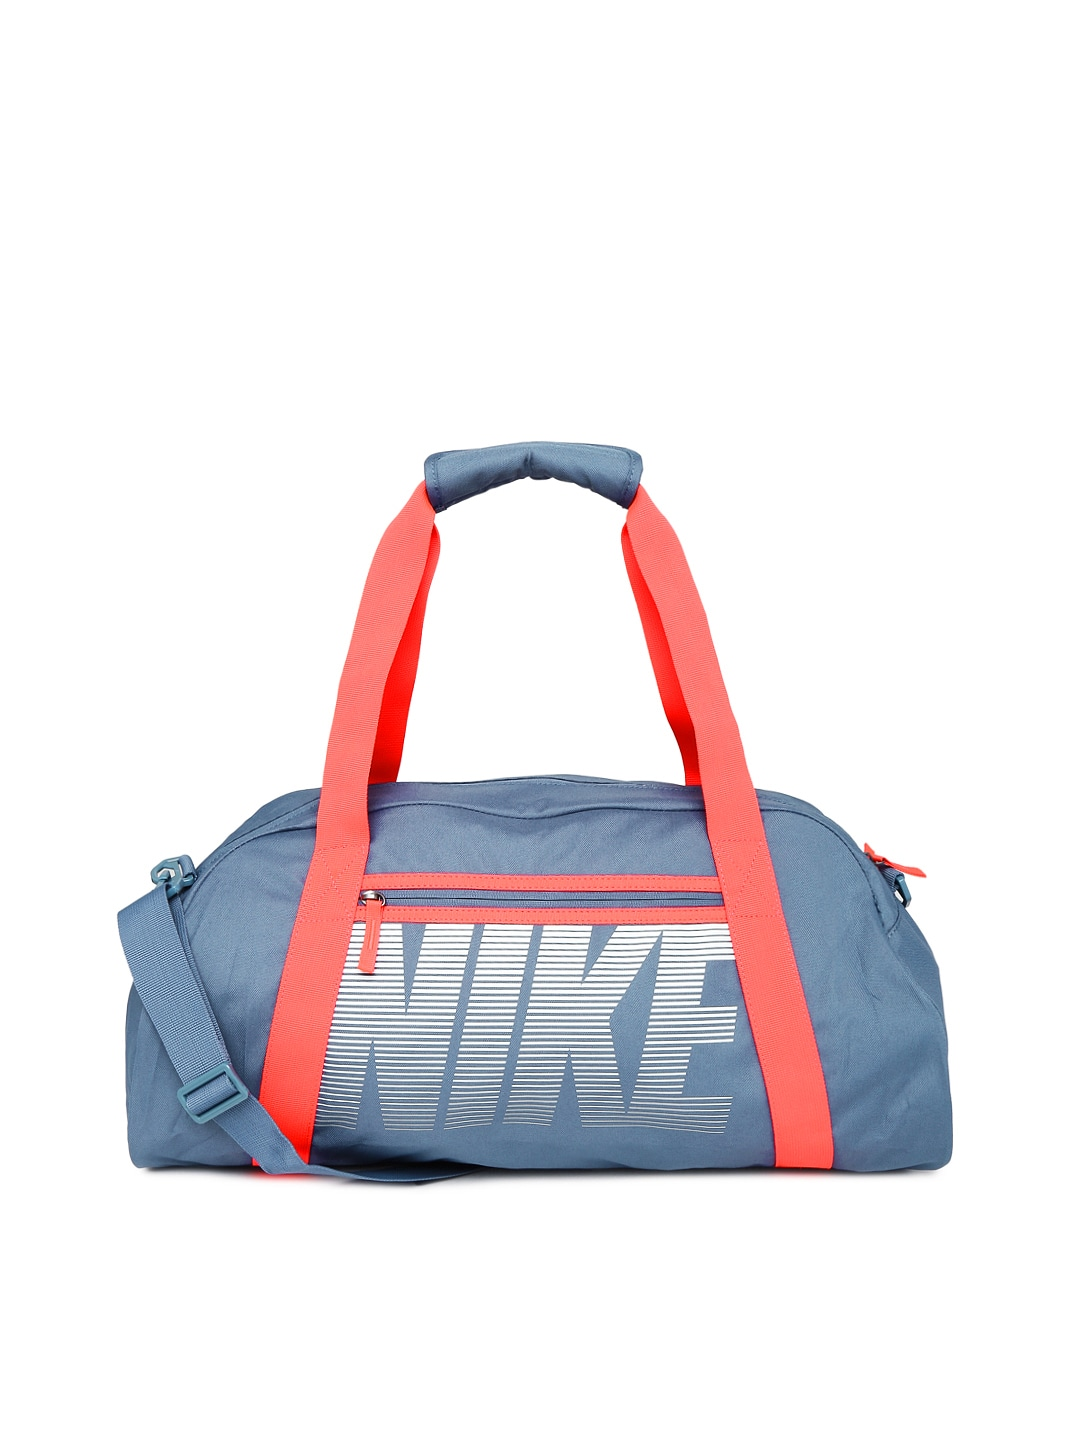 Nike ba5167-404 Women Blue Gym Club Printed Duffle Bag- Price in India c78413b10